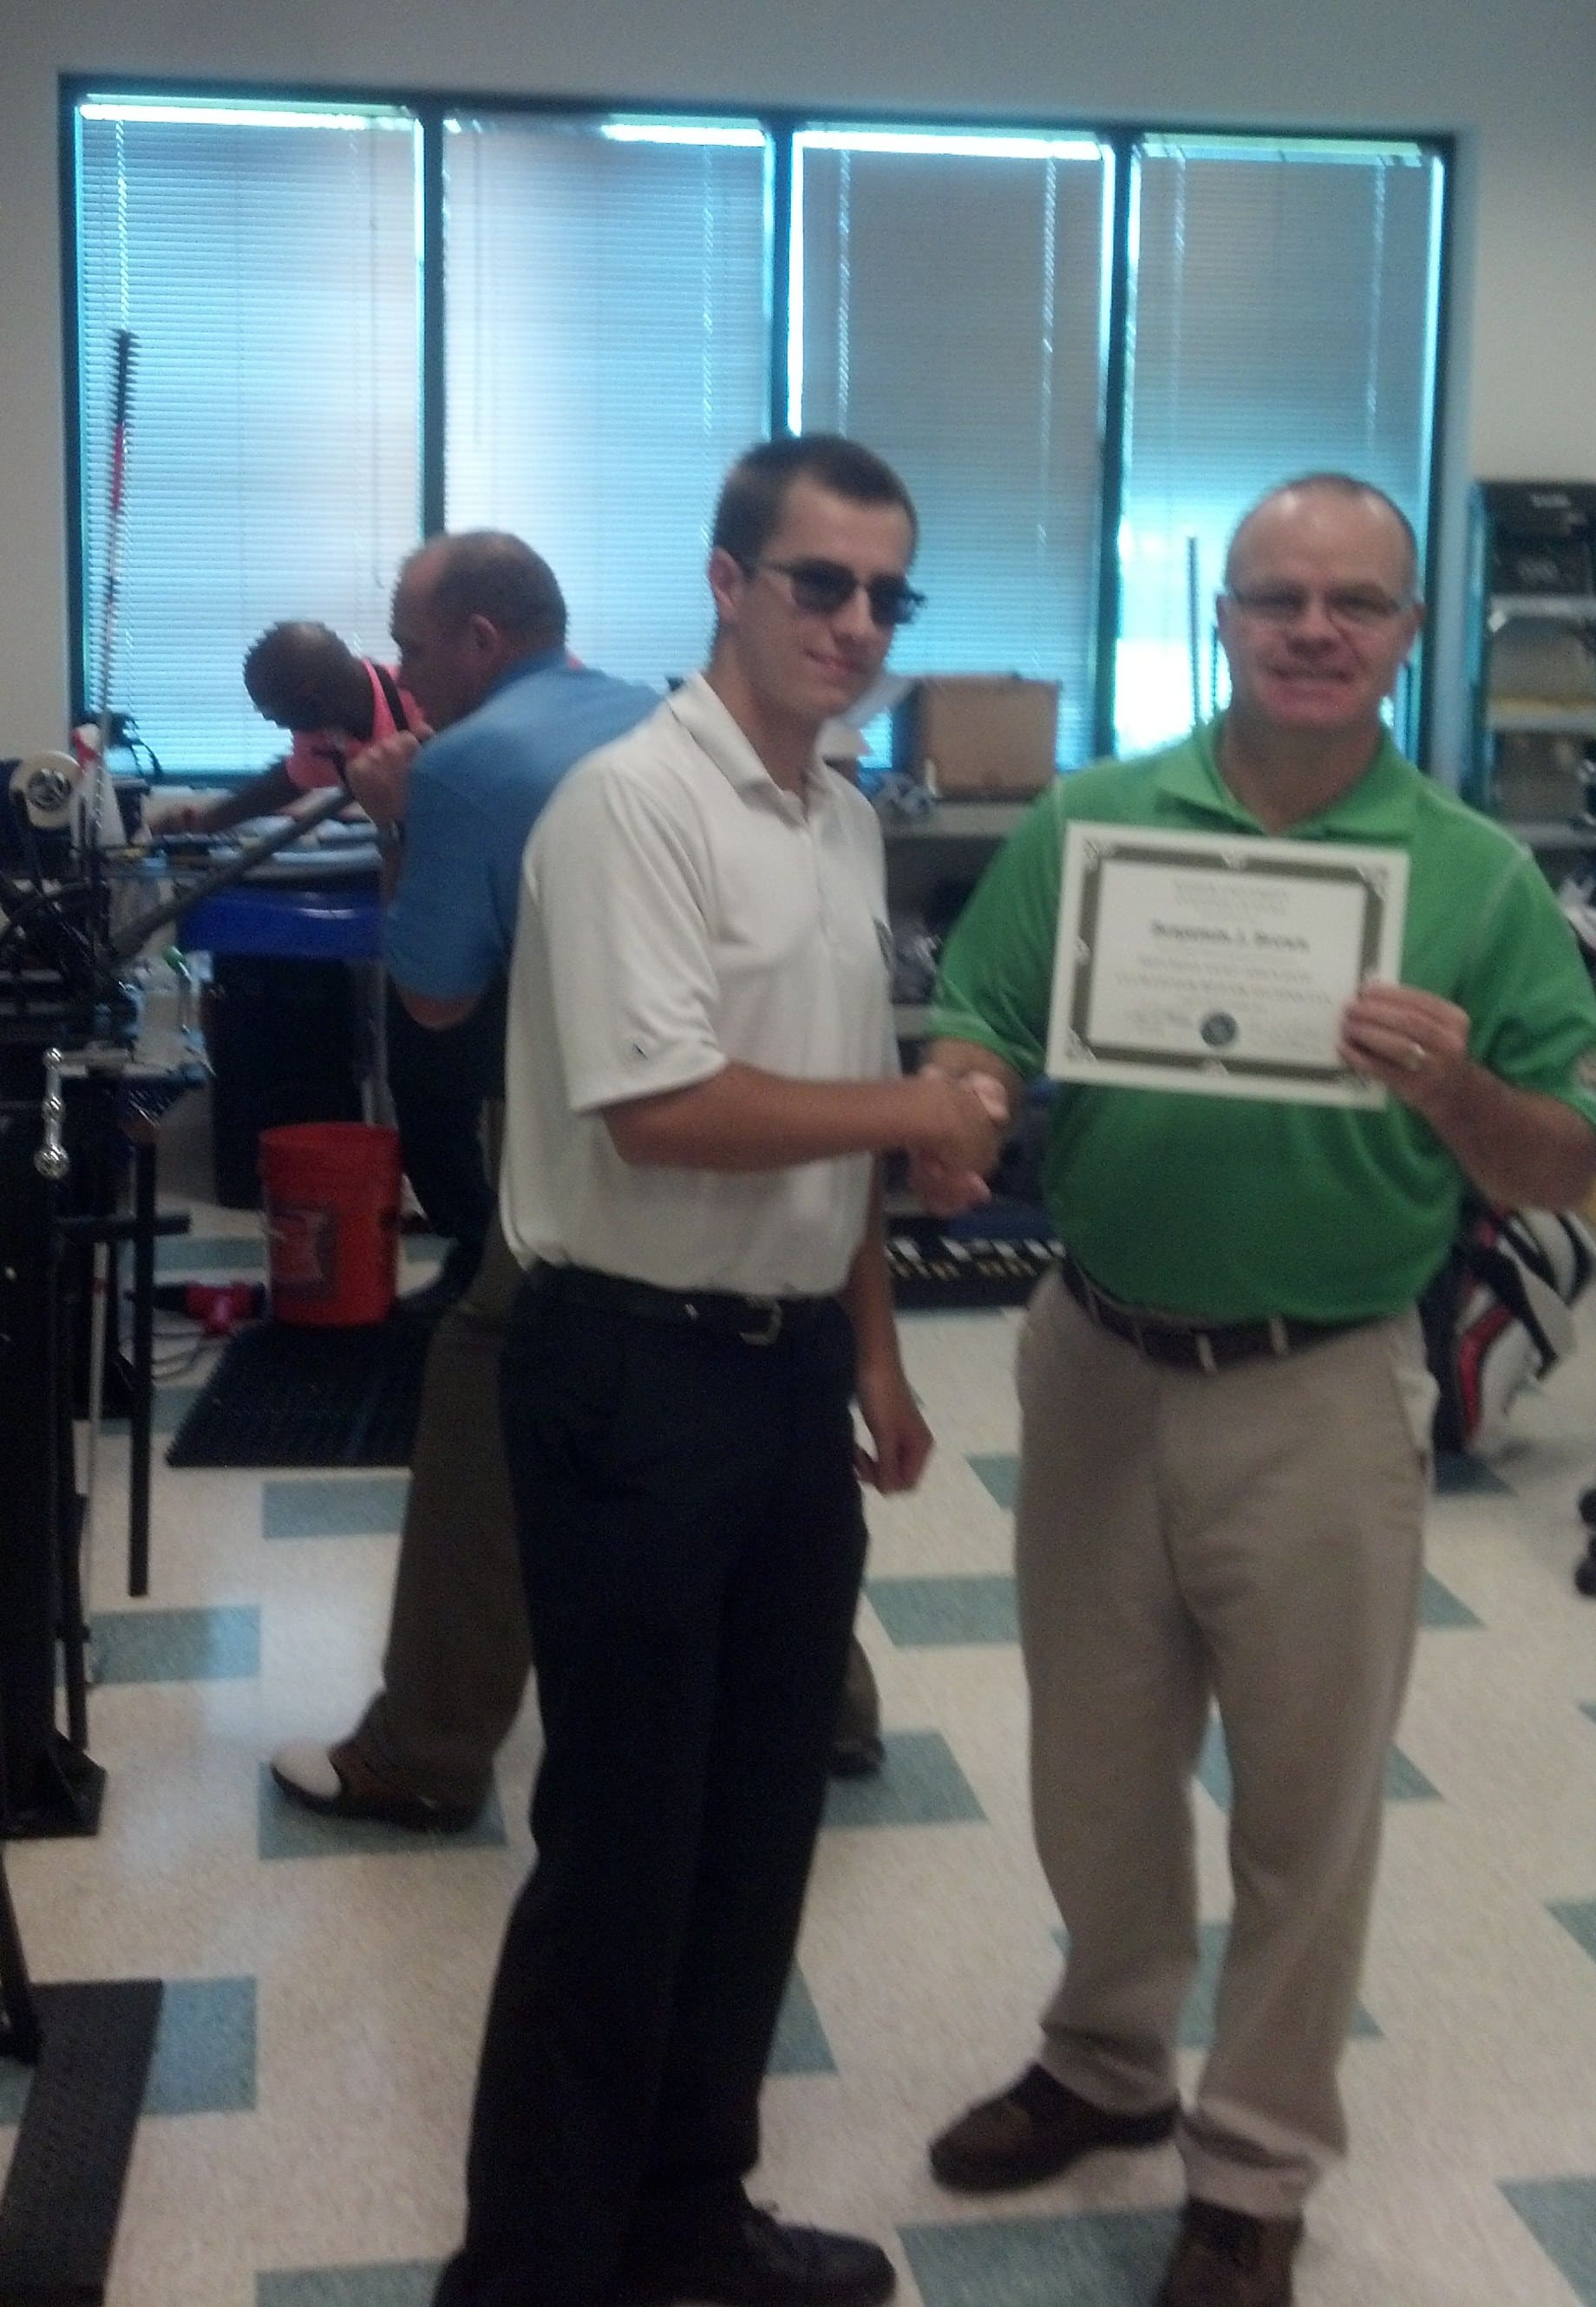 College of Golf and Sport Management Student Receives Certification from PGA Master Professional